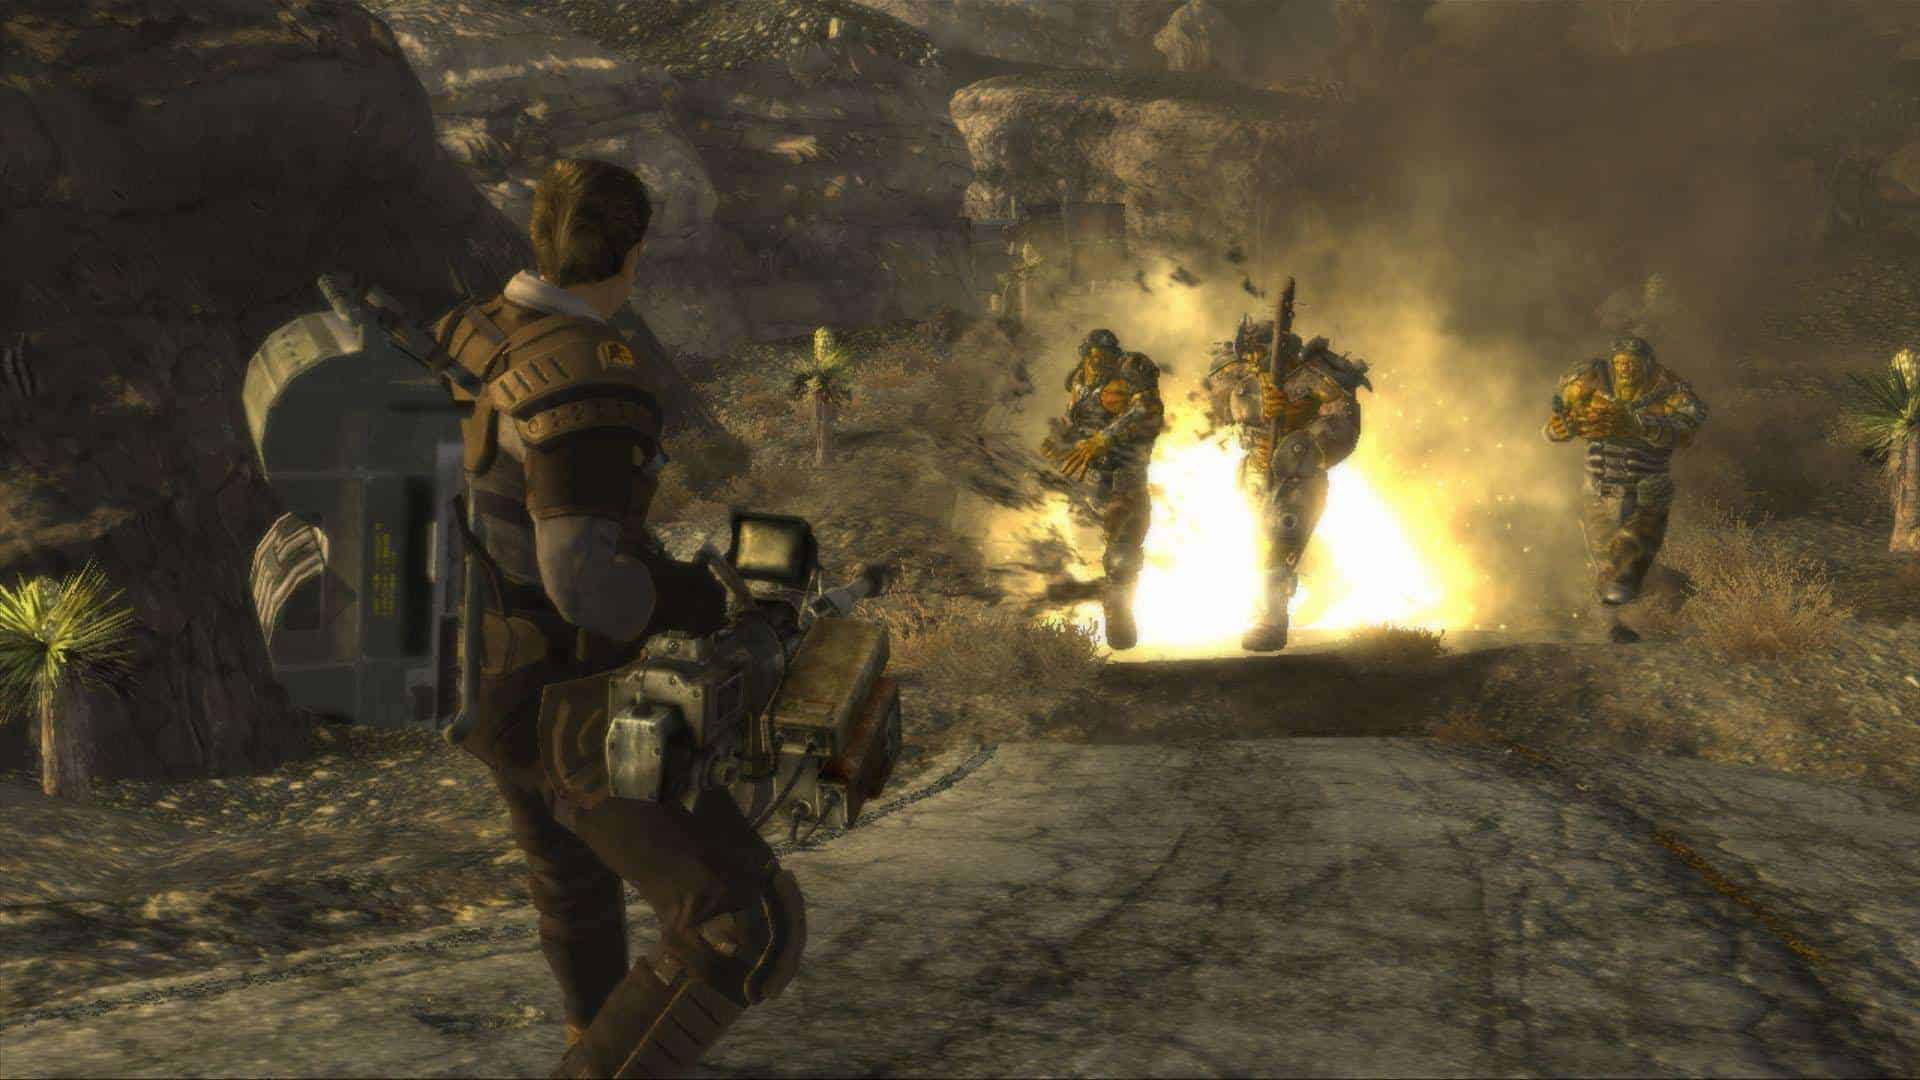 Fallout new vegas games like skyrim